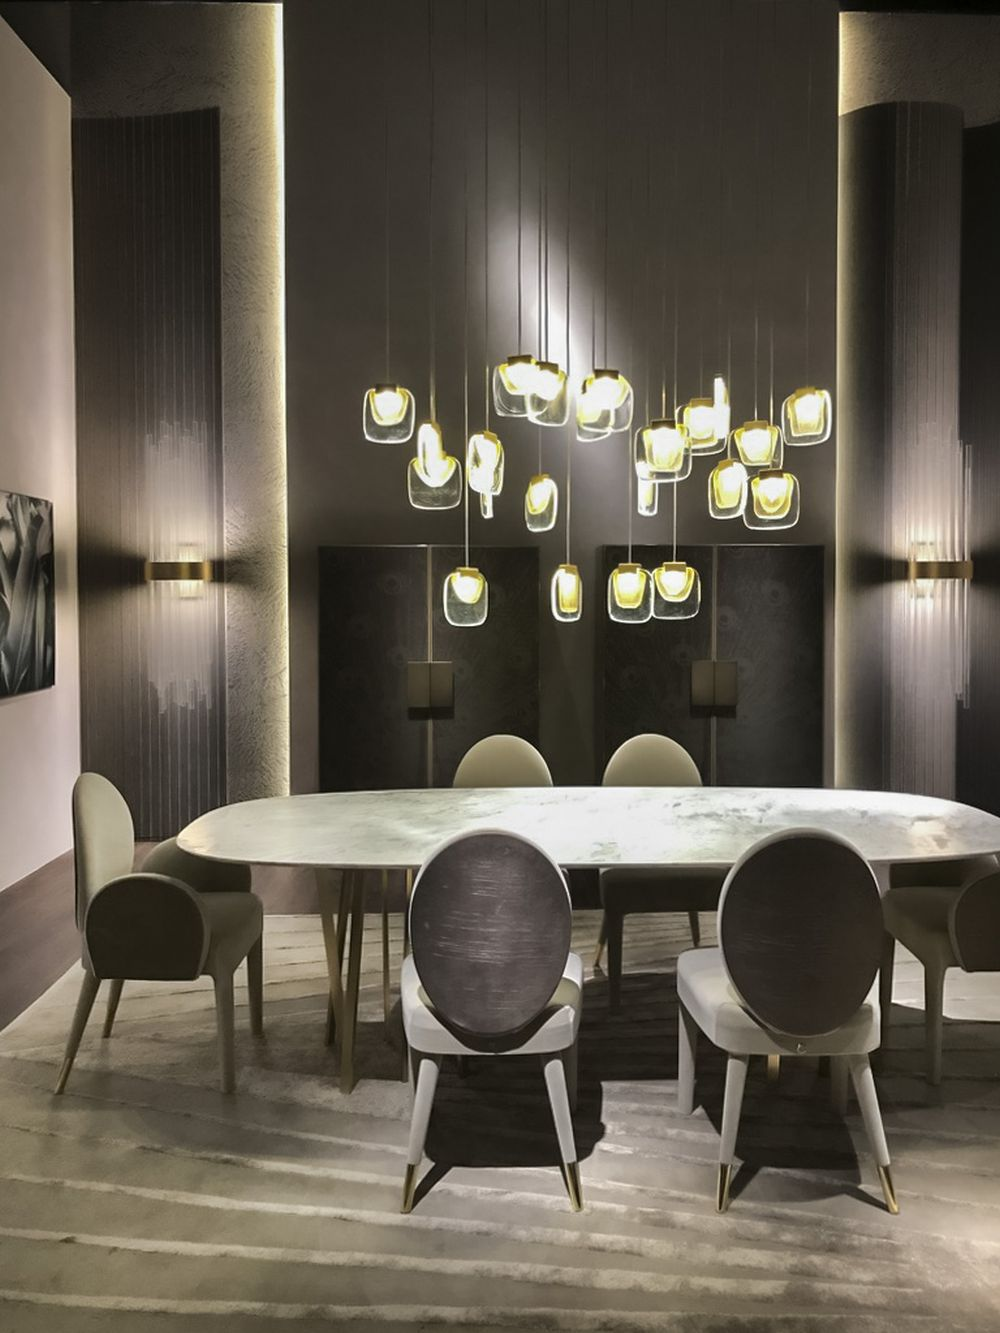 Golden cloud paolo castelli - Lighting Fixtures that Will Add a Bid Dose of Drama to Your Room